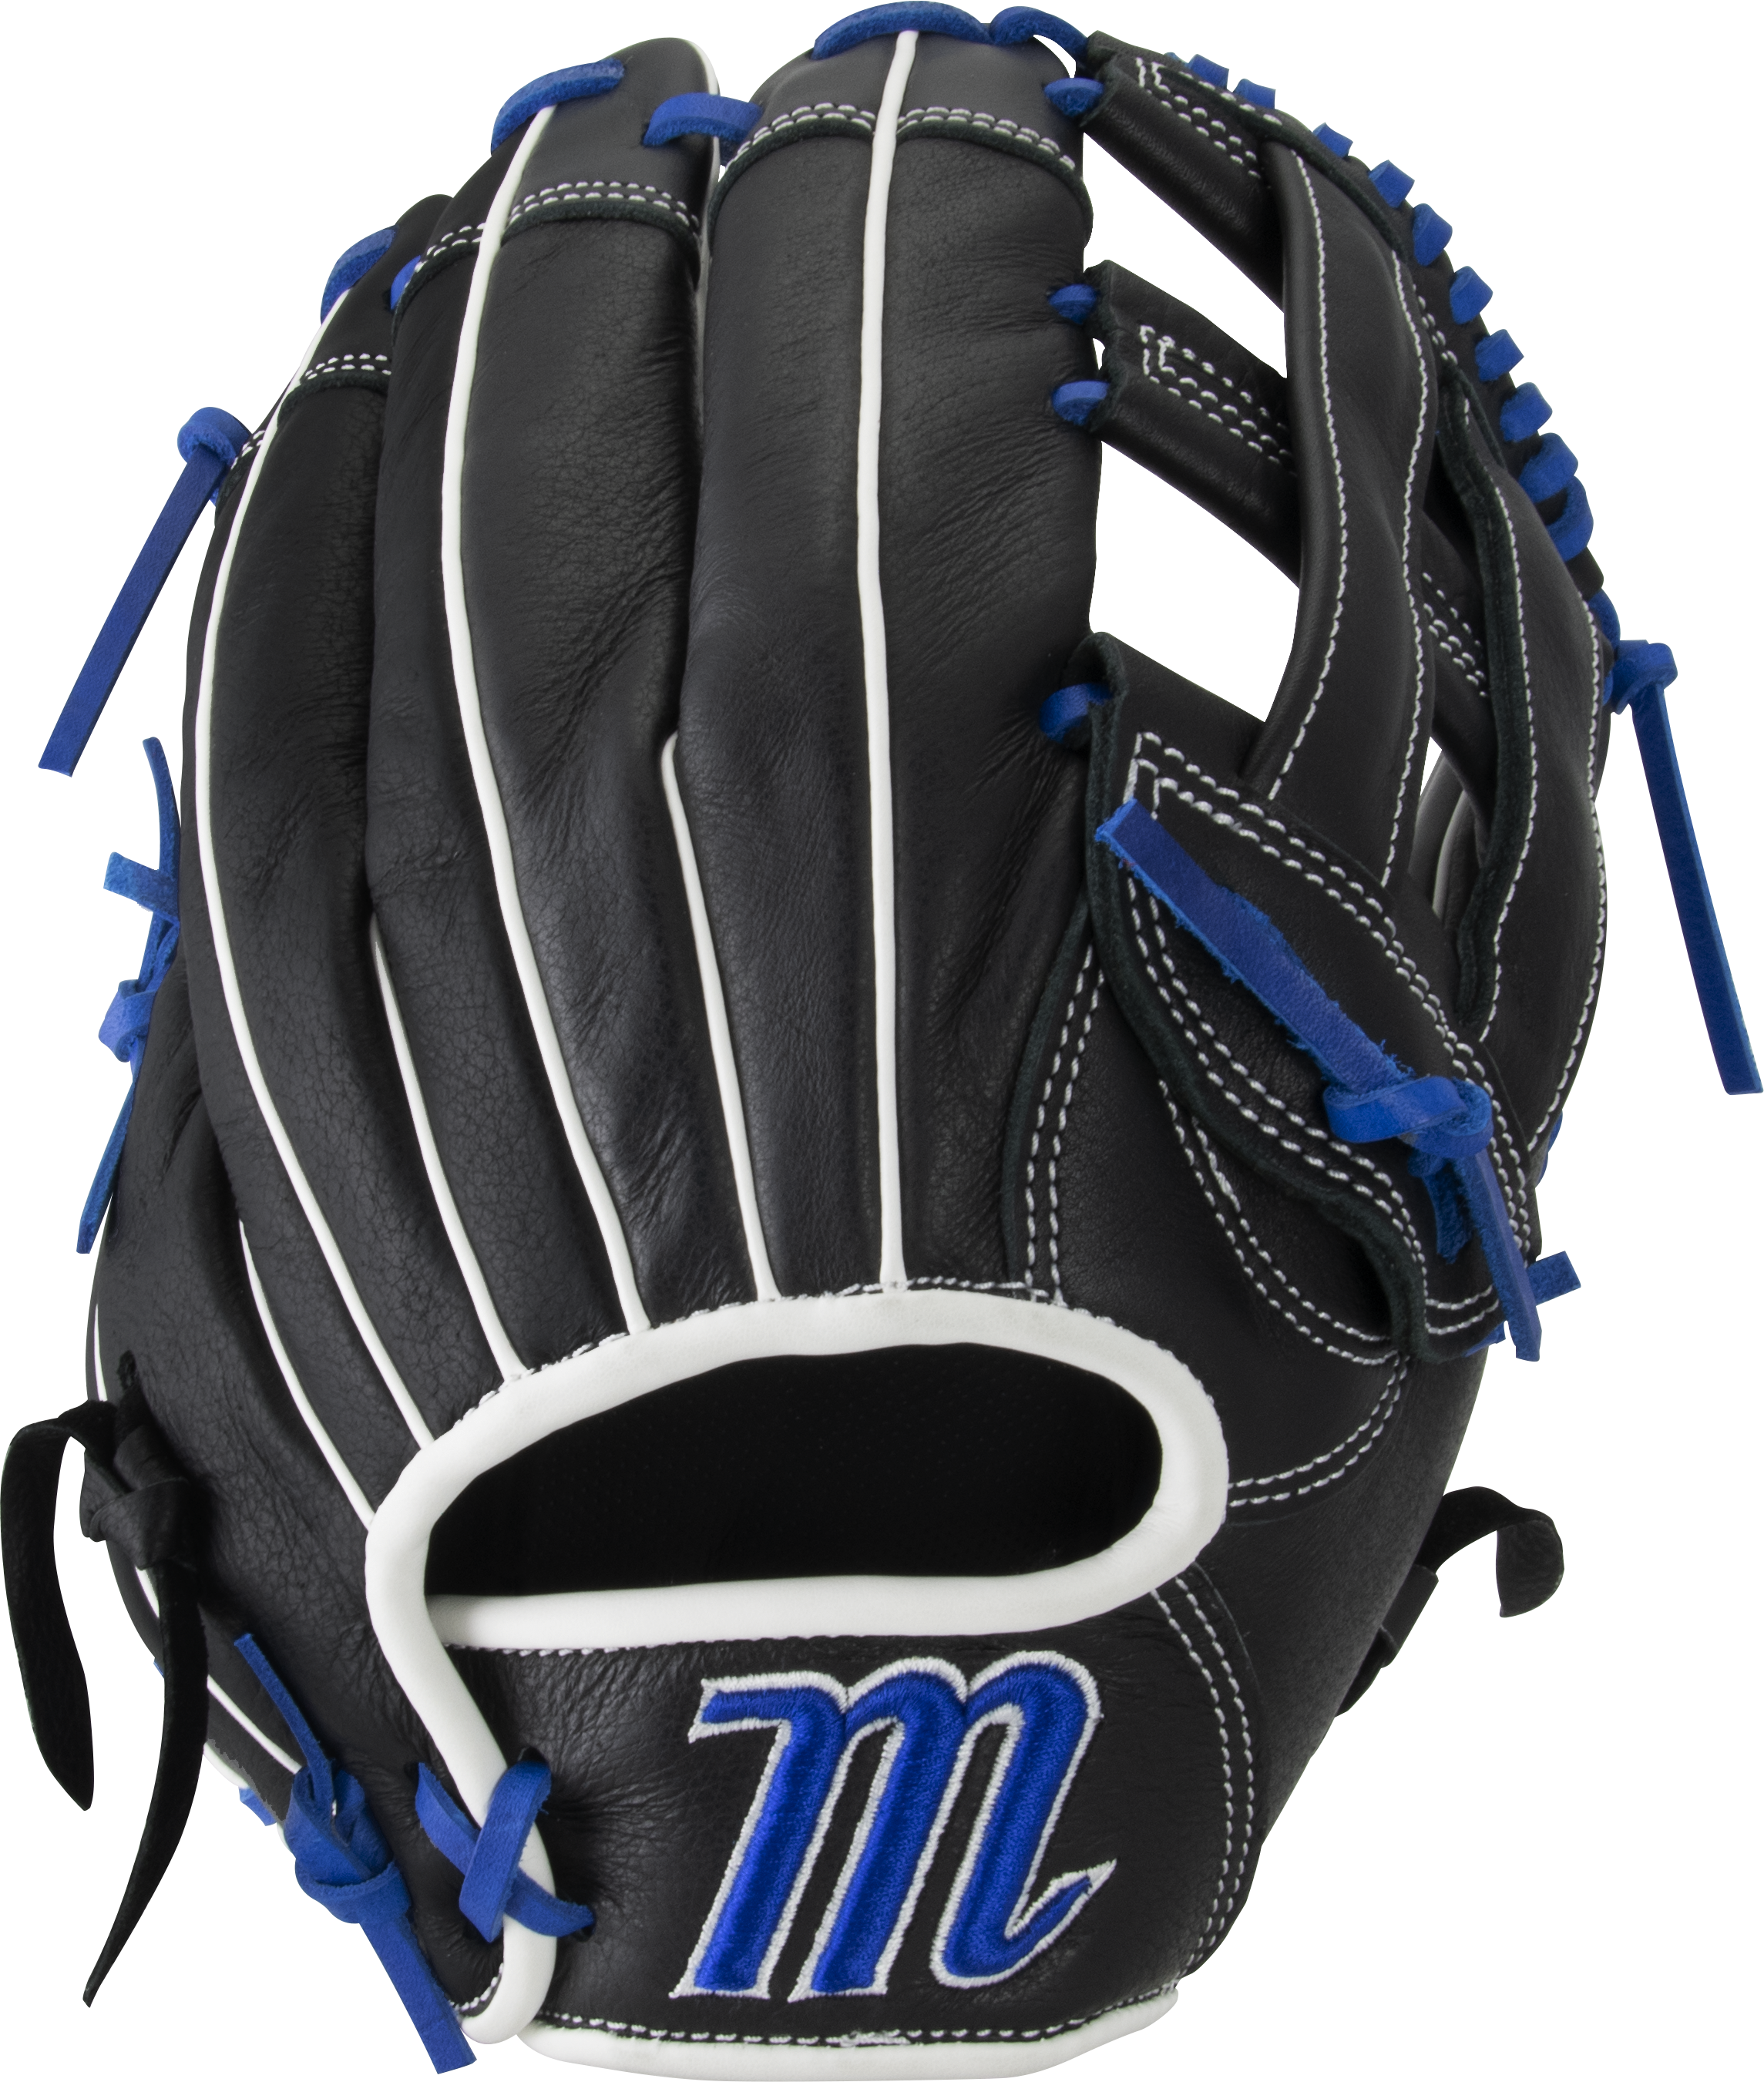 marucci-acadia-youth-baseball-glove-ac125y-12-5-h-web-right-hand-throw MFGAC125Y-BKRB-RightHandThrow  849817099766 Full leather shell provides strength while padded palm lining reduces weight